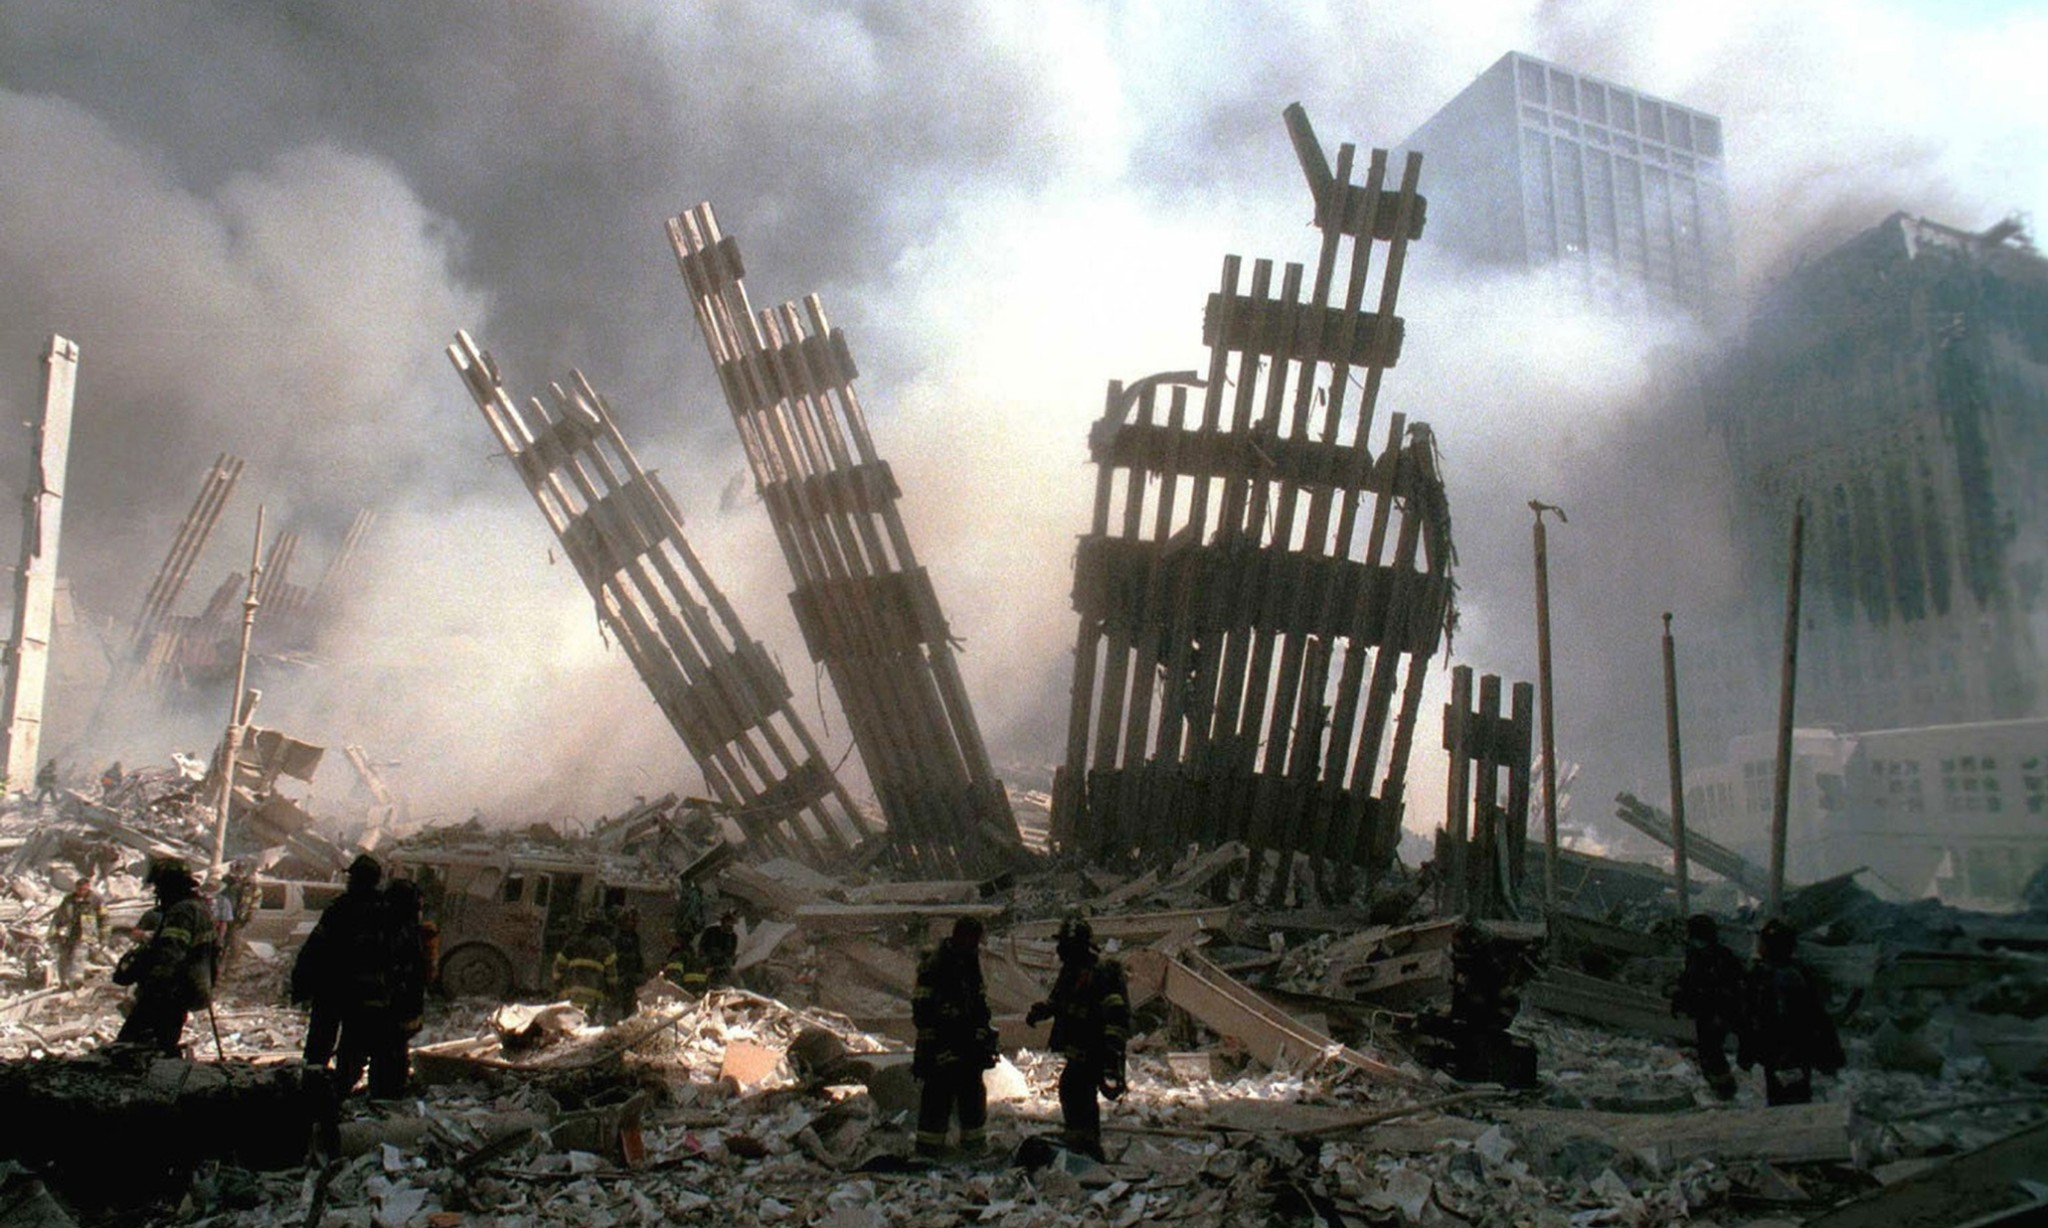 'There is no silver bullet': Isis, al-Qaida and the myths of terrorism